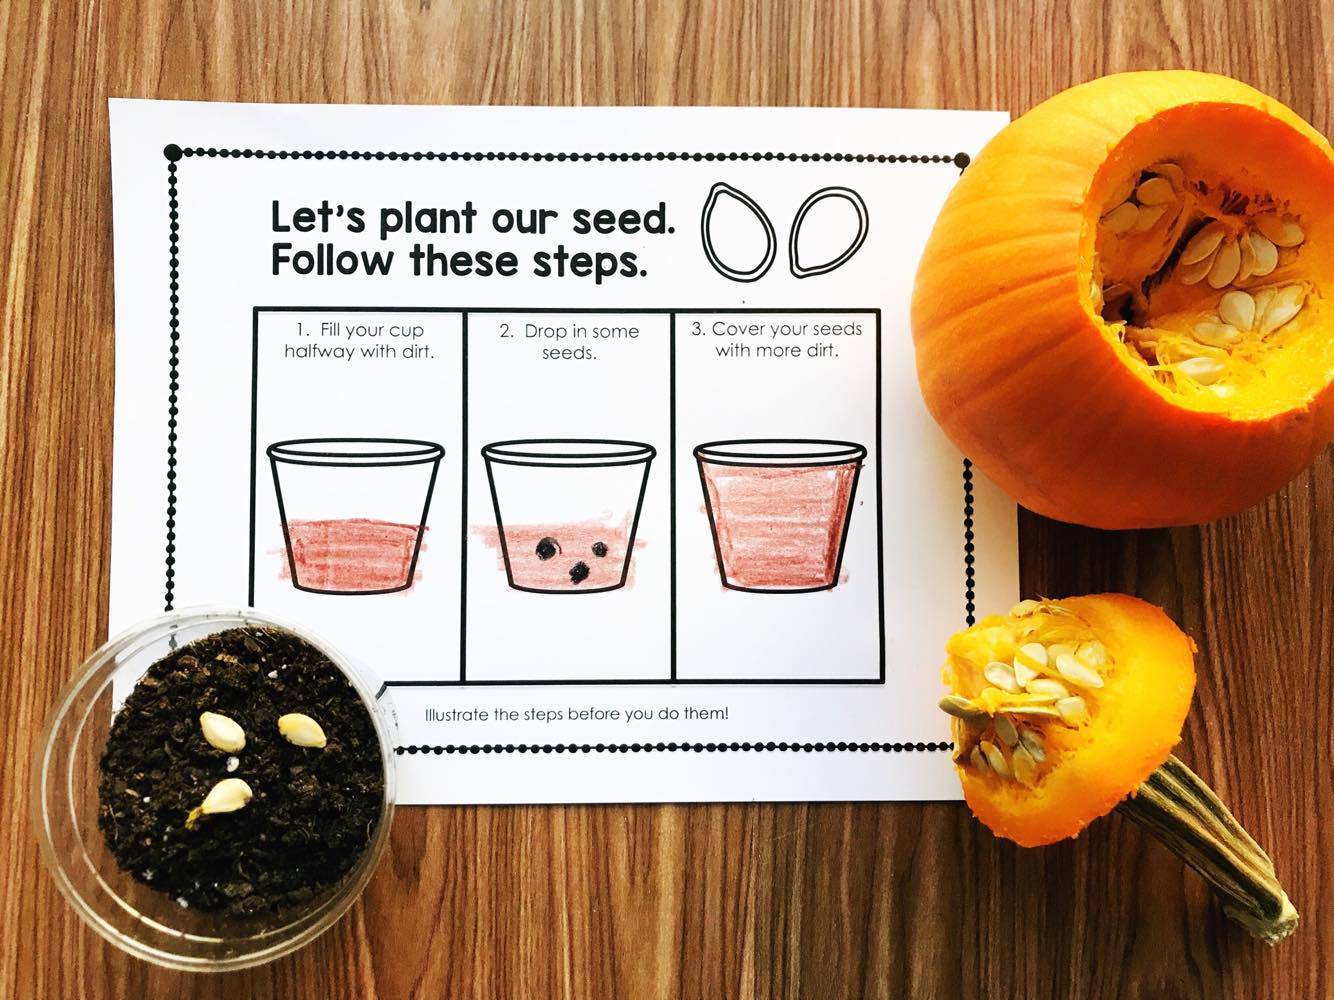 Are you planning pumpkins in preschool, kindergarten, or first grade? This interactive science book will walk you through the process and teach your students about the pumpkin life cycle. A fun little interactive book from Simply Kinder.